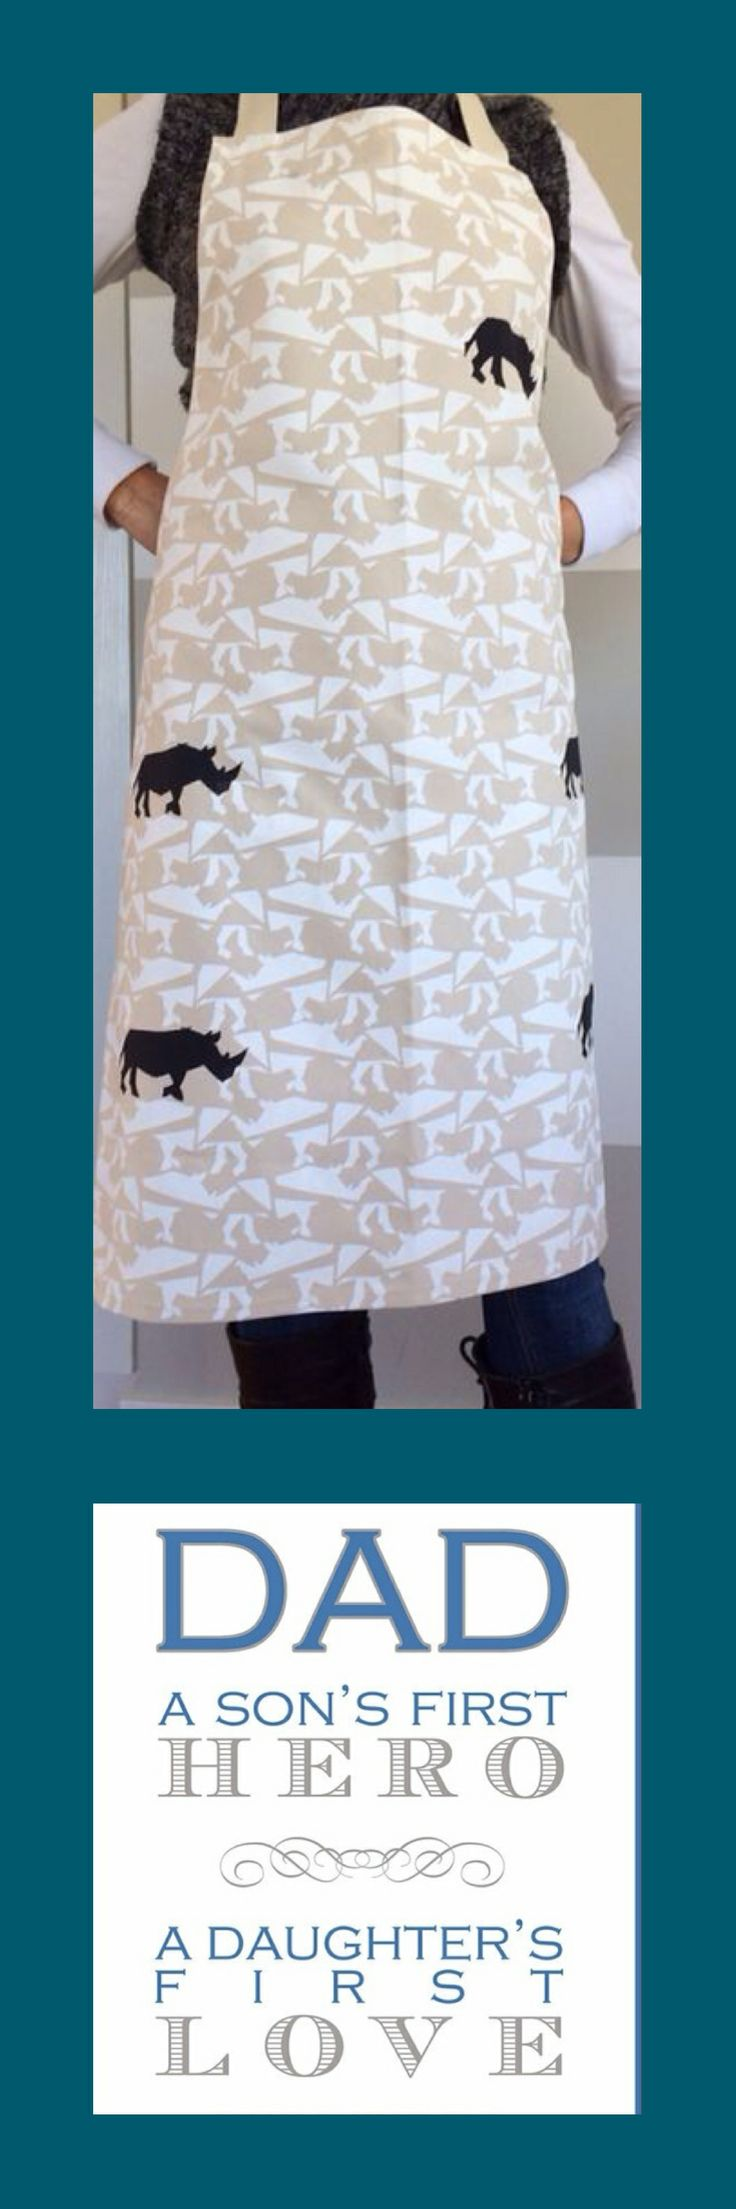 Fathers Day Aprons available @ eCo, 196 Main Rd, Walmer, Port Elizabeth, South Africa - SuzieQu Bespoke Rhino print